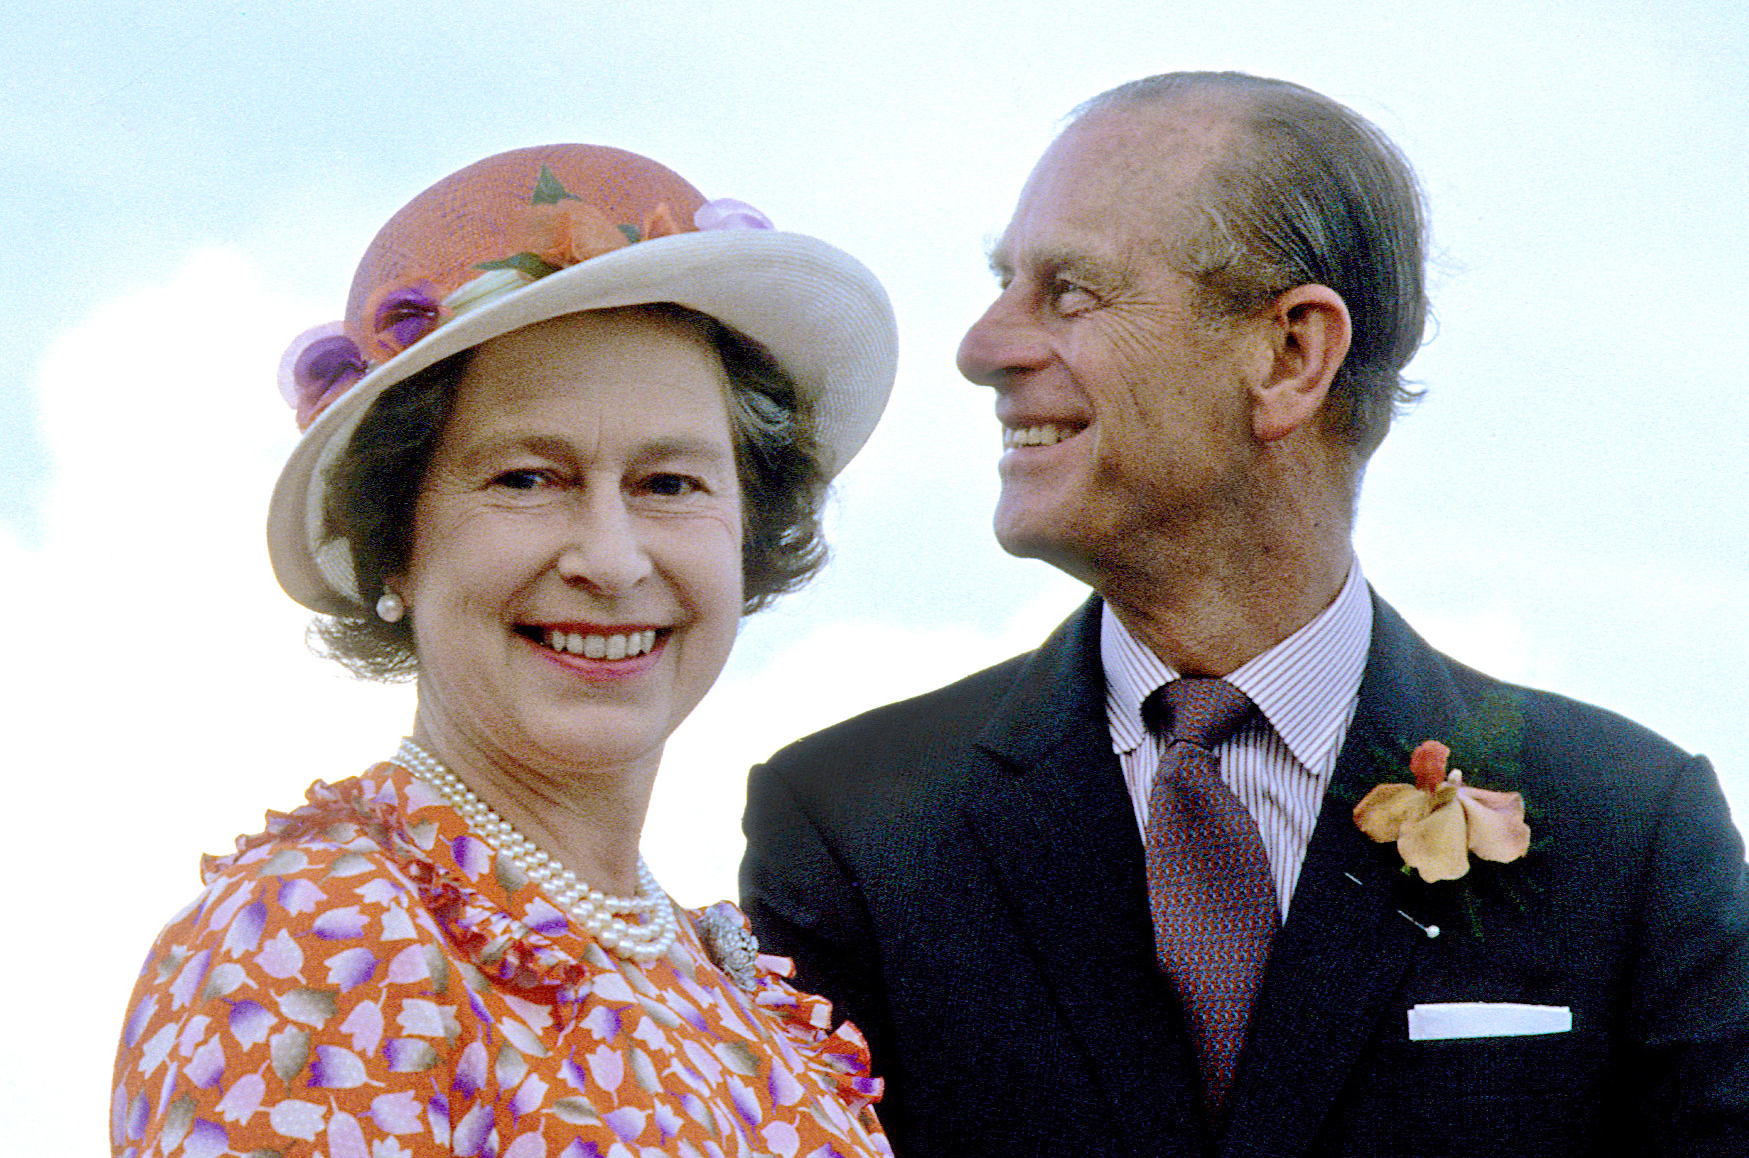 At the age of 95 Prince Philip, Duke of Edinburgh today announced he was retiring from his official Royal duties after 70 years dedicated service to Britain and Her Majesty the Queen.